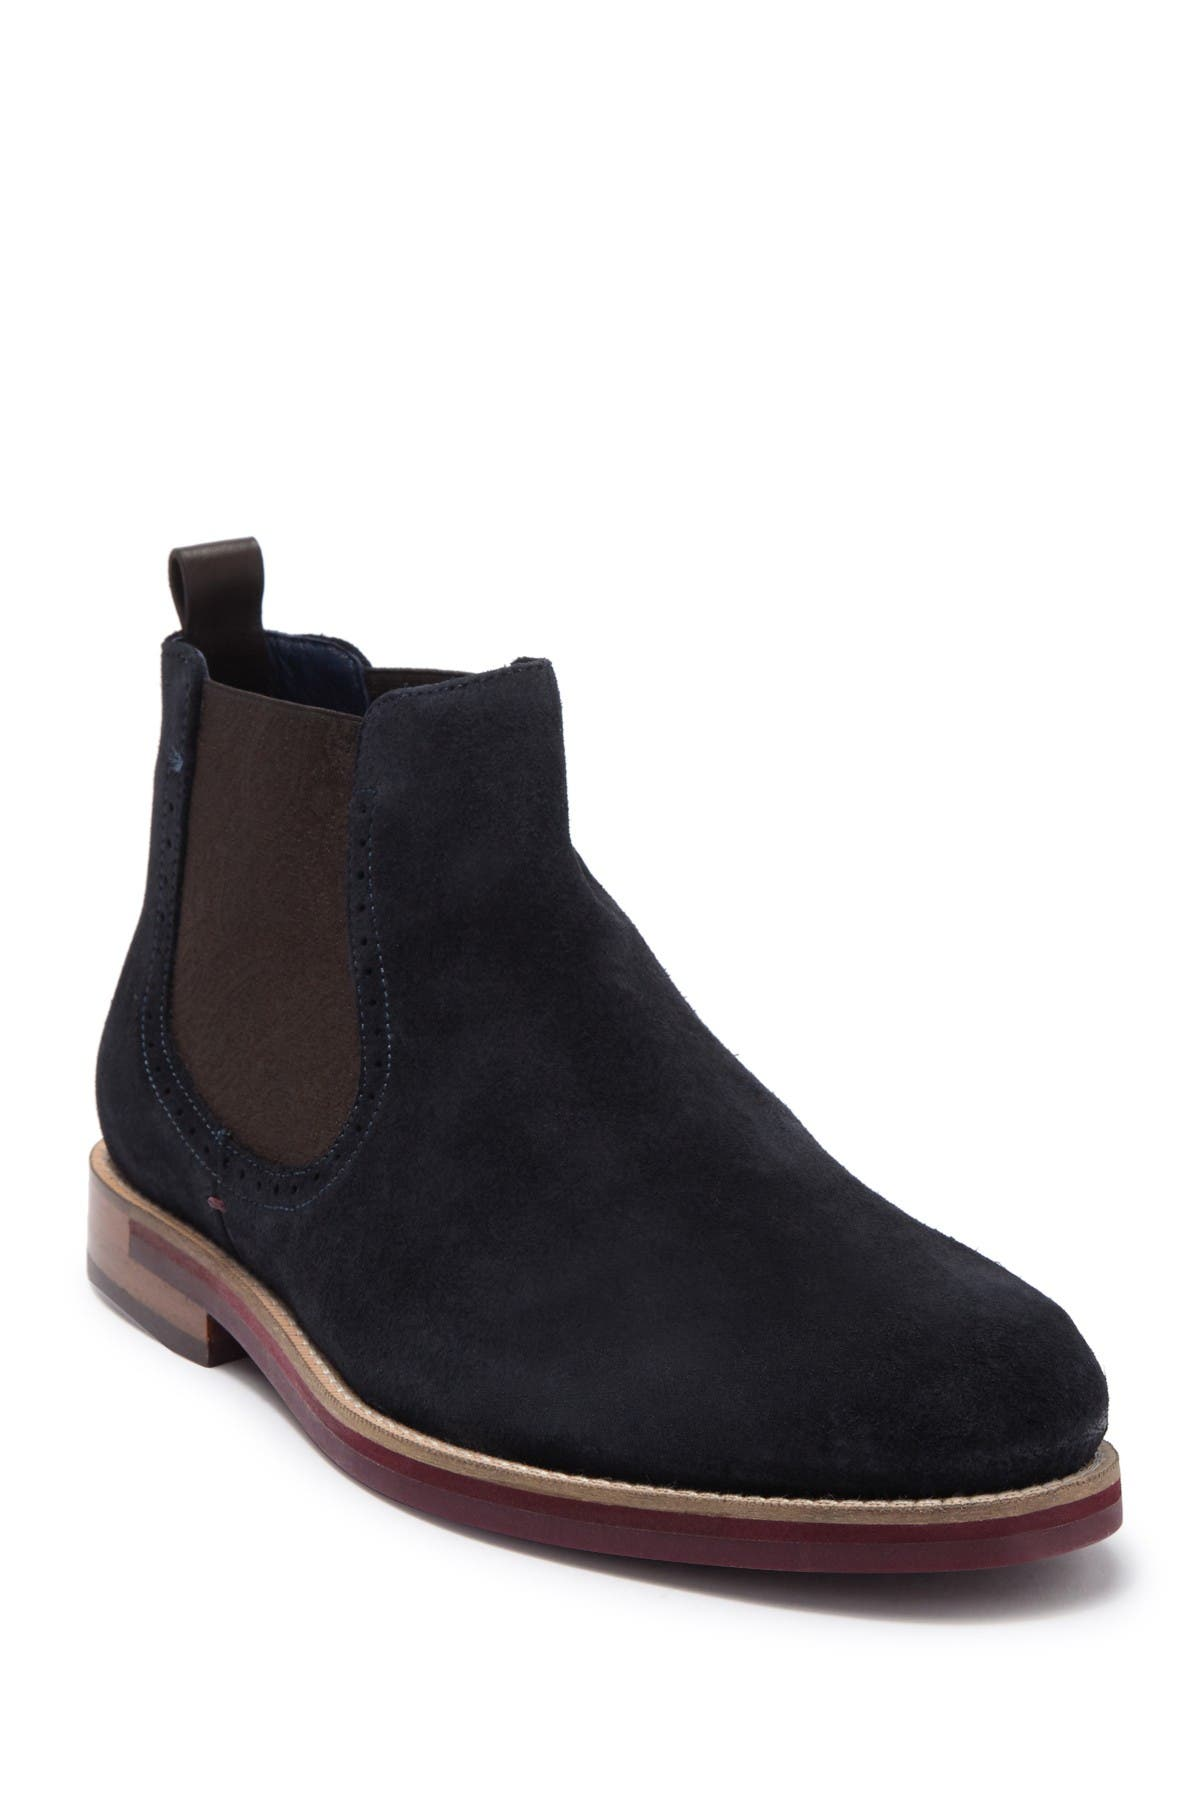 Ted Baker London   Seciant Suede